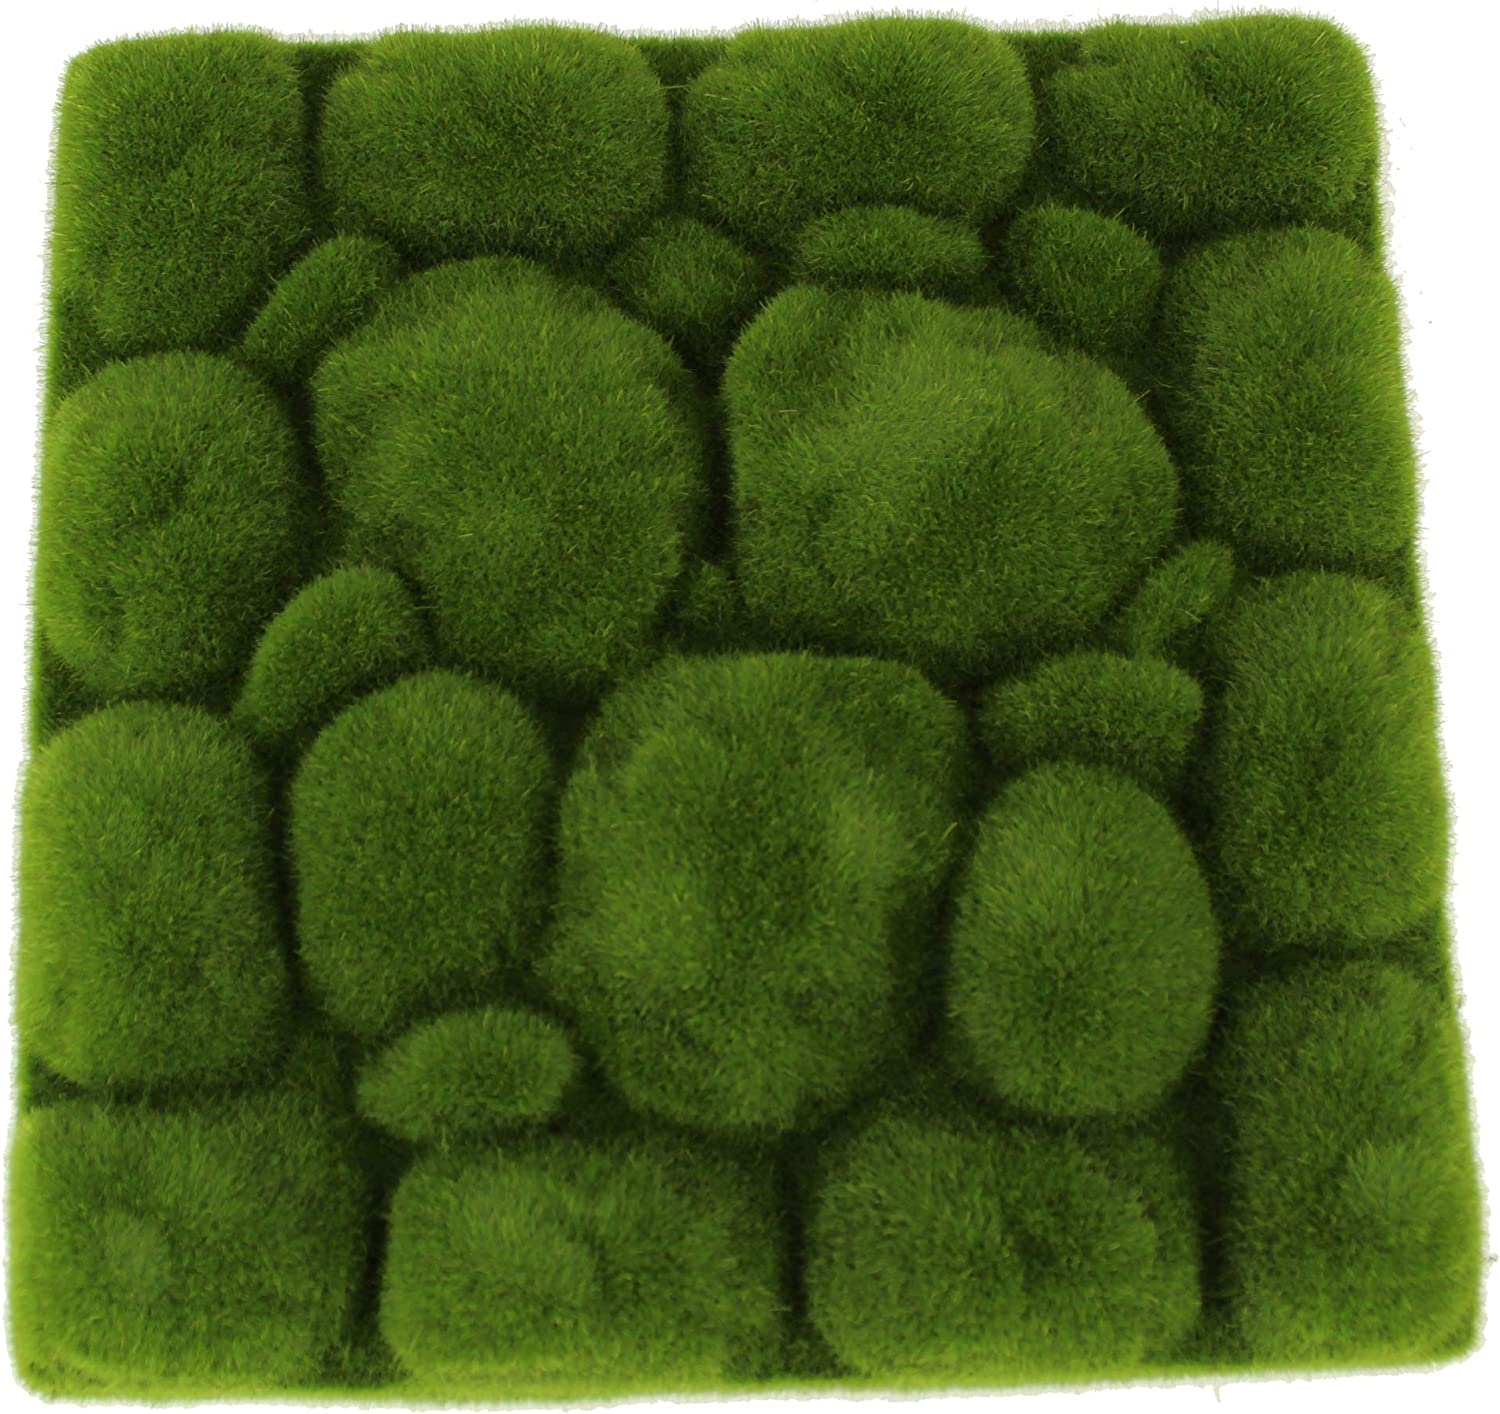 Novobey Artificial Moss Rocks 7 Pieces 3 Size Decorative Faux Green Moss Covered Stones for Floral Arrangements Fairy Gardens and Crafting